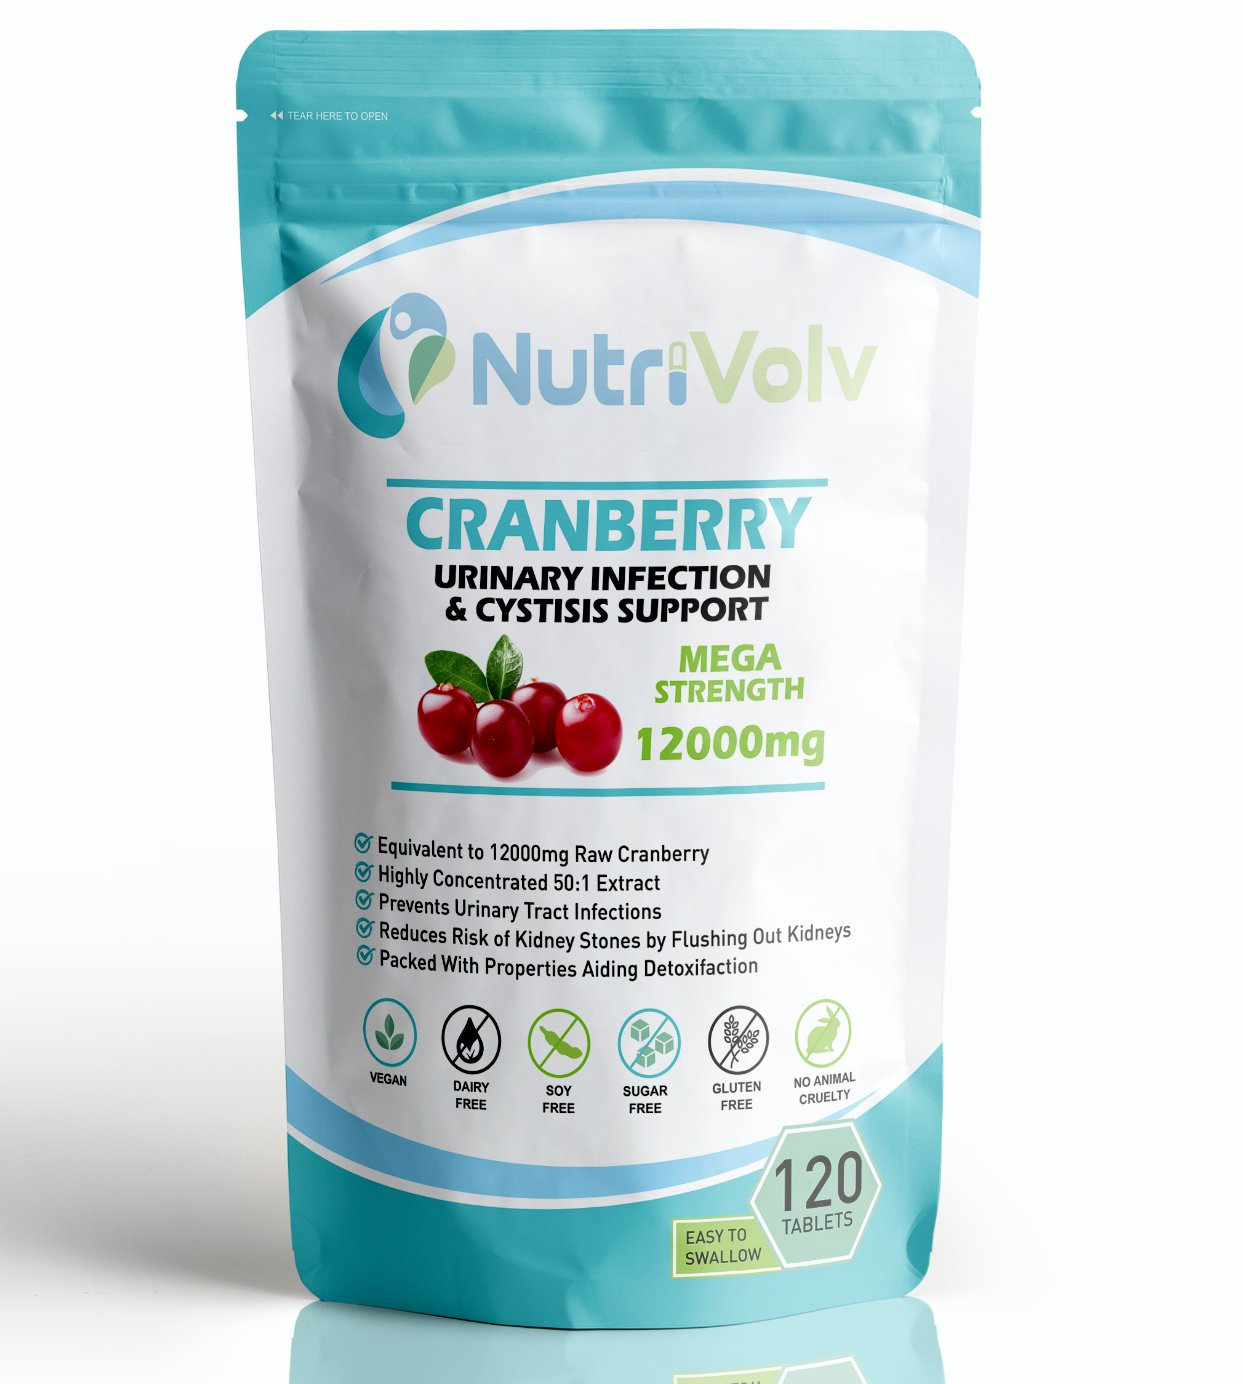 Cranberry Juice 12000mg - Cystitis, Urinary Bladder, Liver, UTI Support